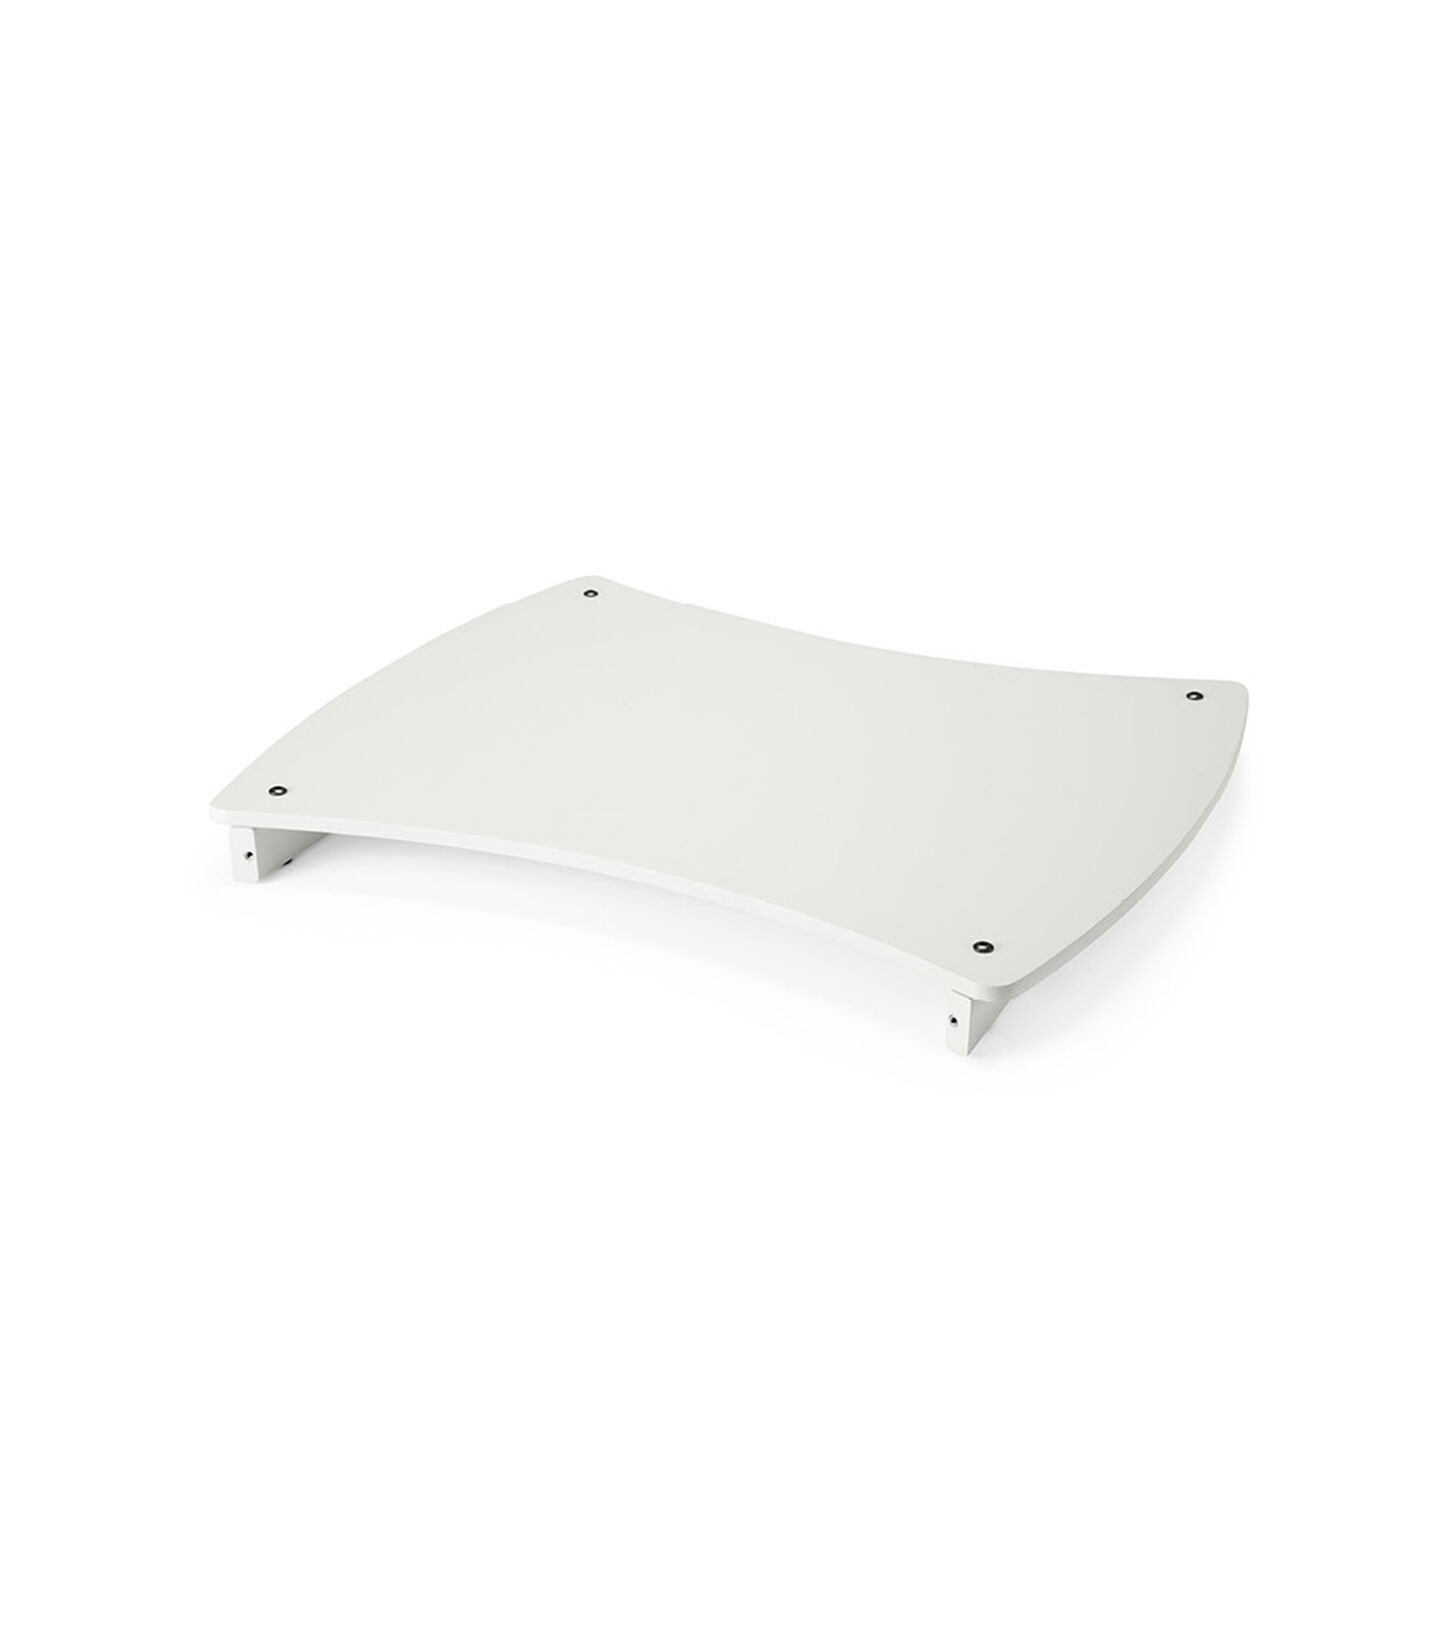 Stokke® Care™ Tablette Supérieure Complete Blanc, Blanc, mainview view 2